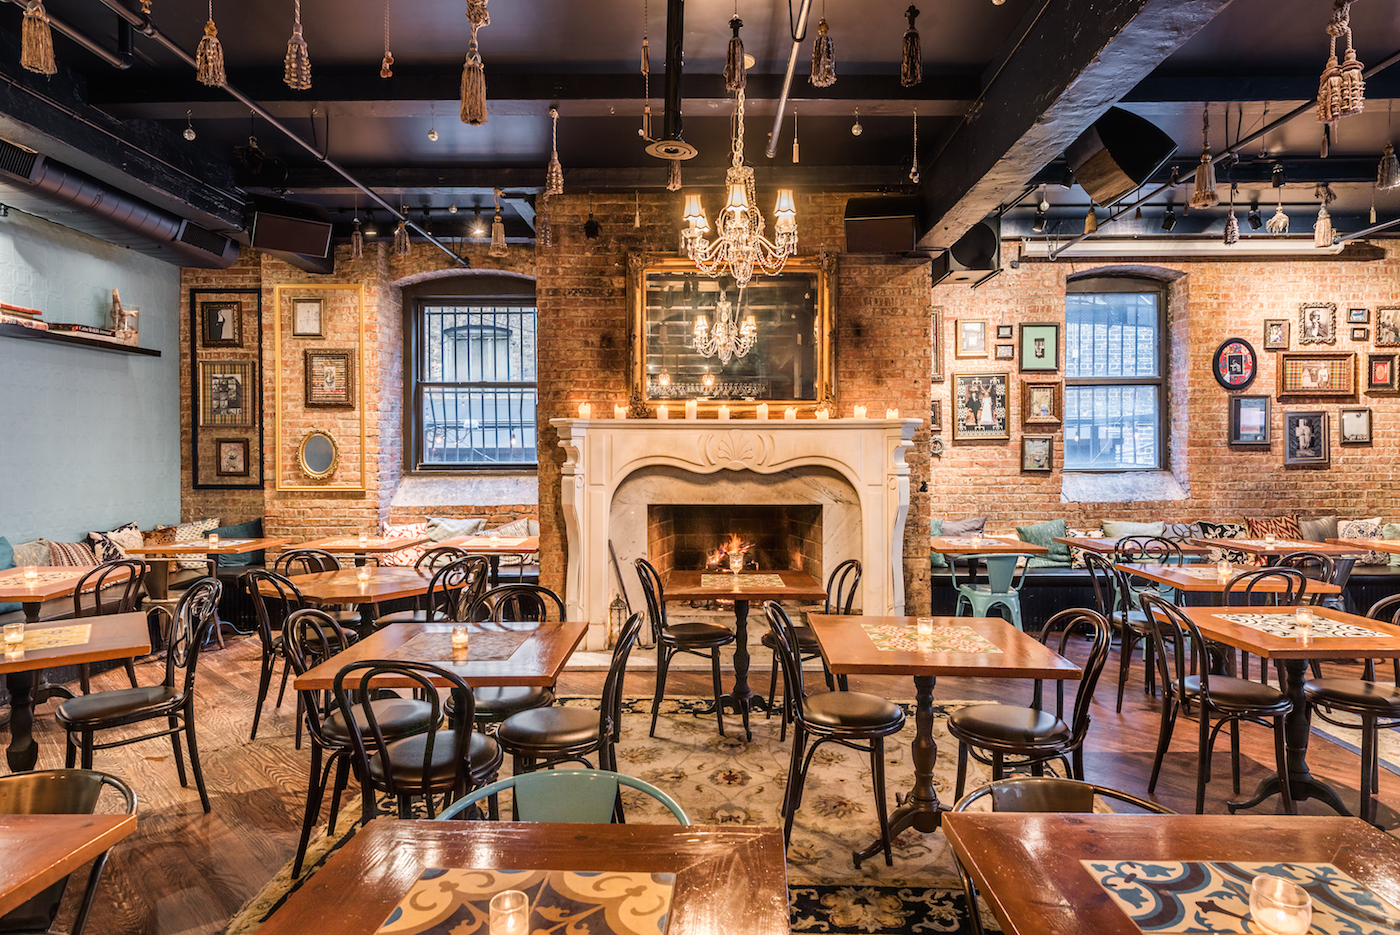 11 Cozy Chicago Bars And Restaurants For Fireplaces And Hot